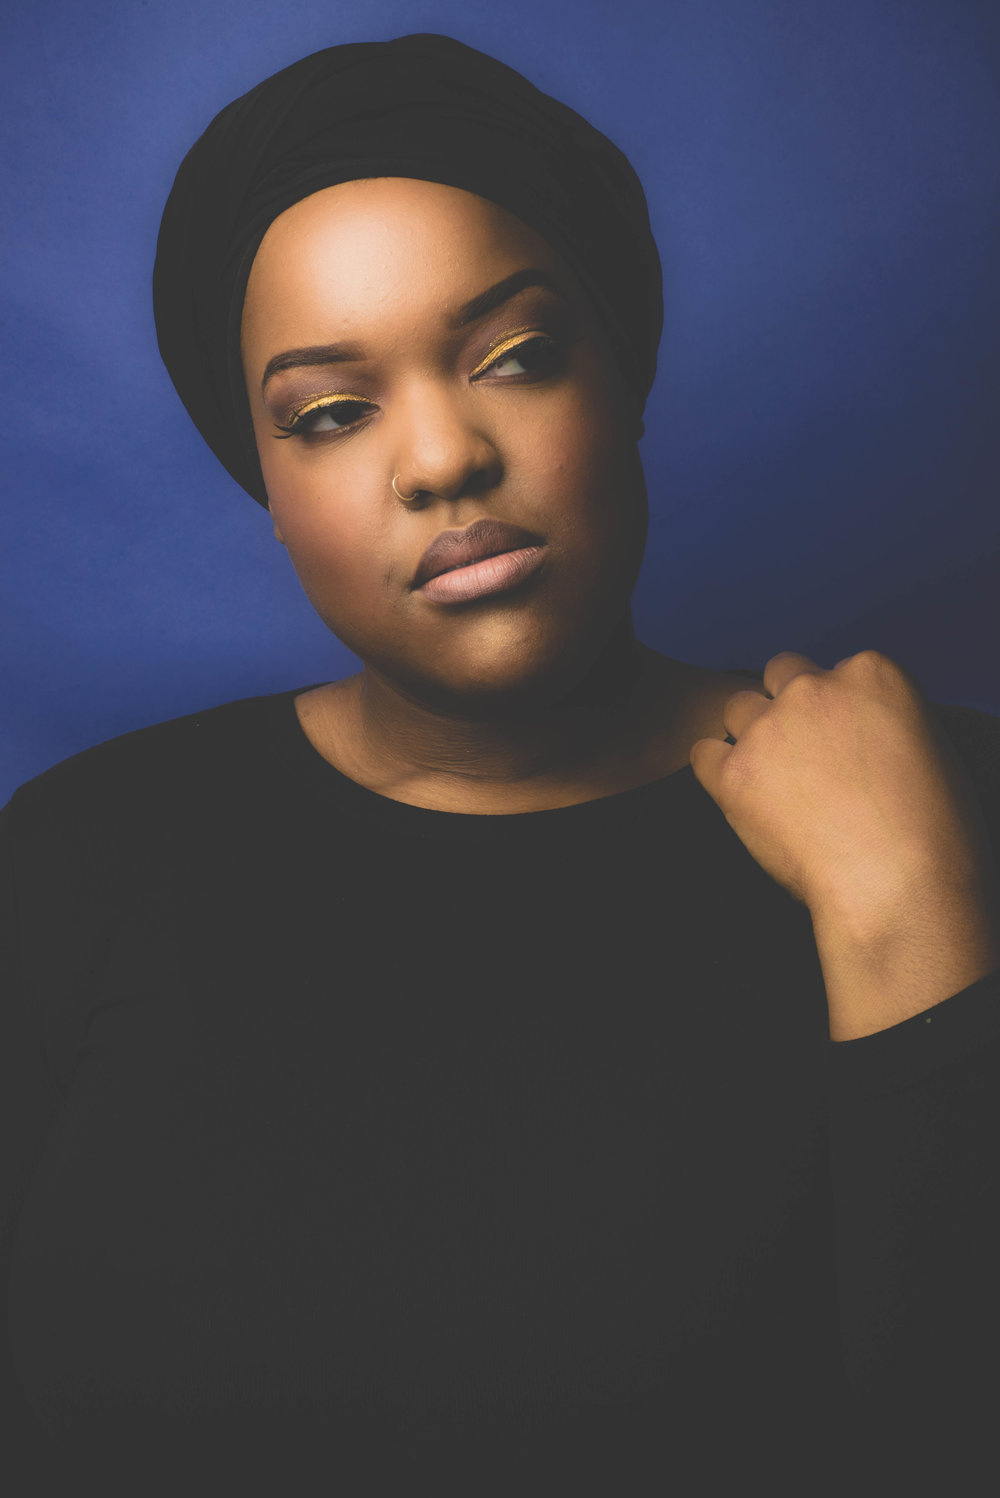 Leah-Vernon-Justin-Milhouse-Portrait-Black-Muslim-Girl-plus-size-model-body-positive.jpg